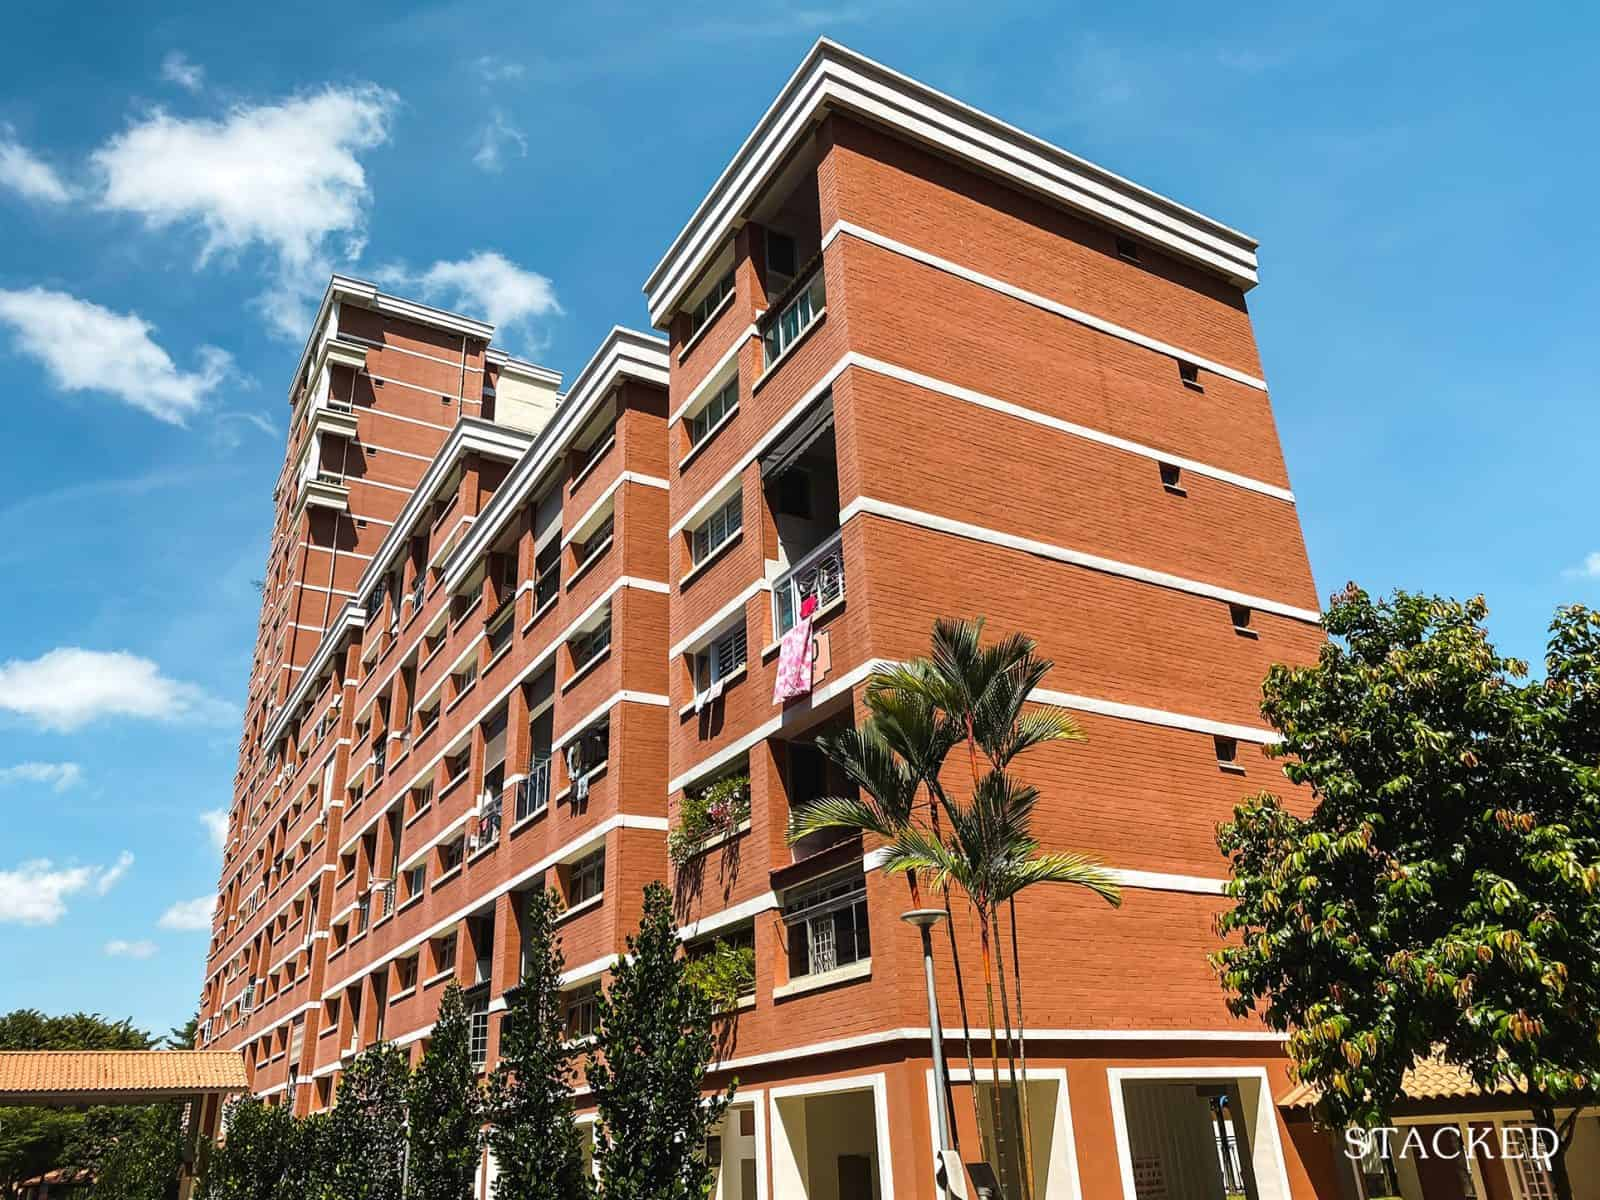 Can You Still Afford A Mature-estate HDB Flat In 2020?